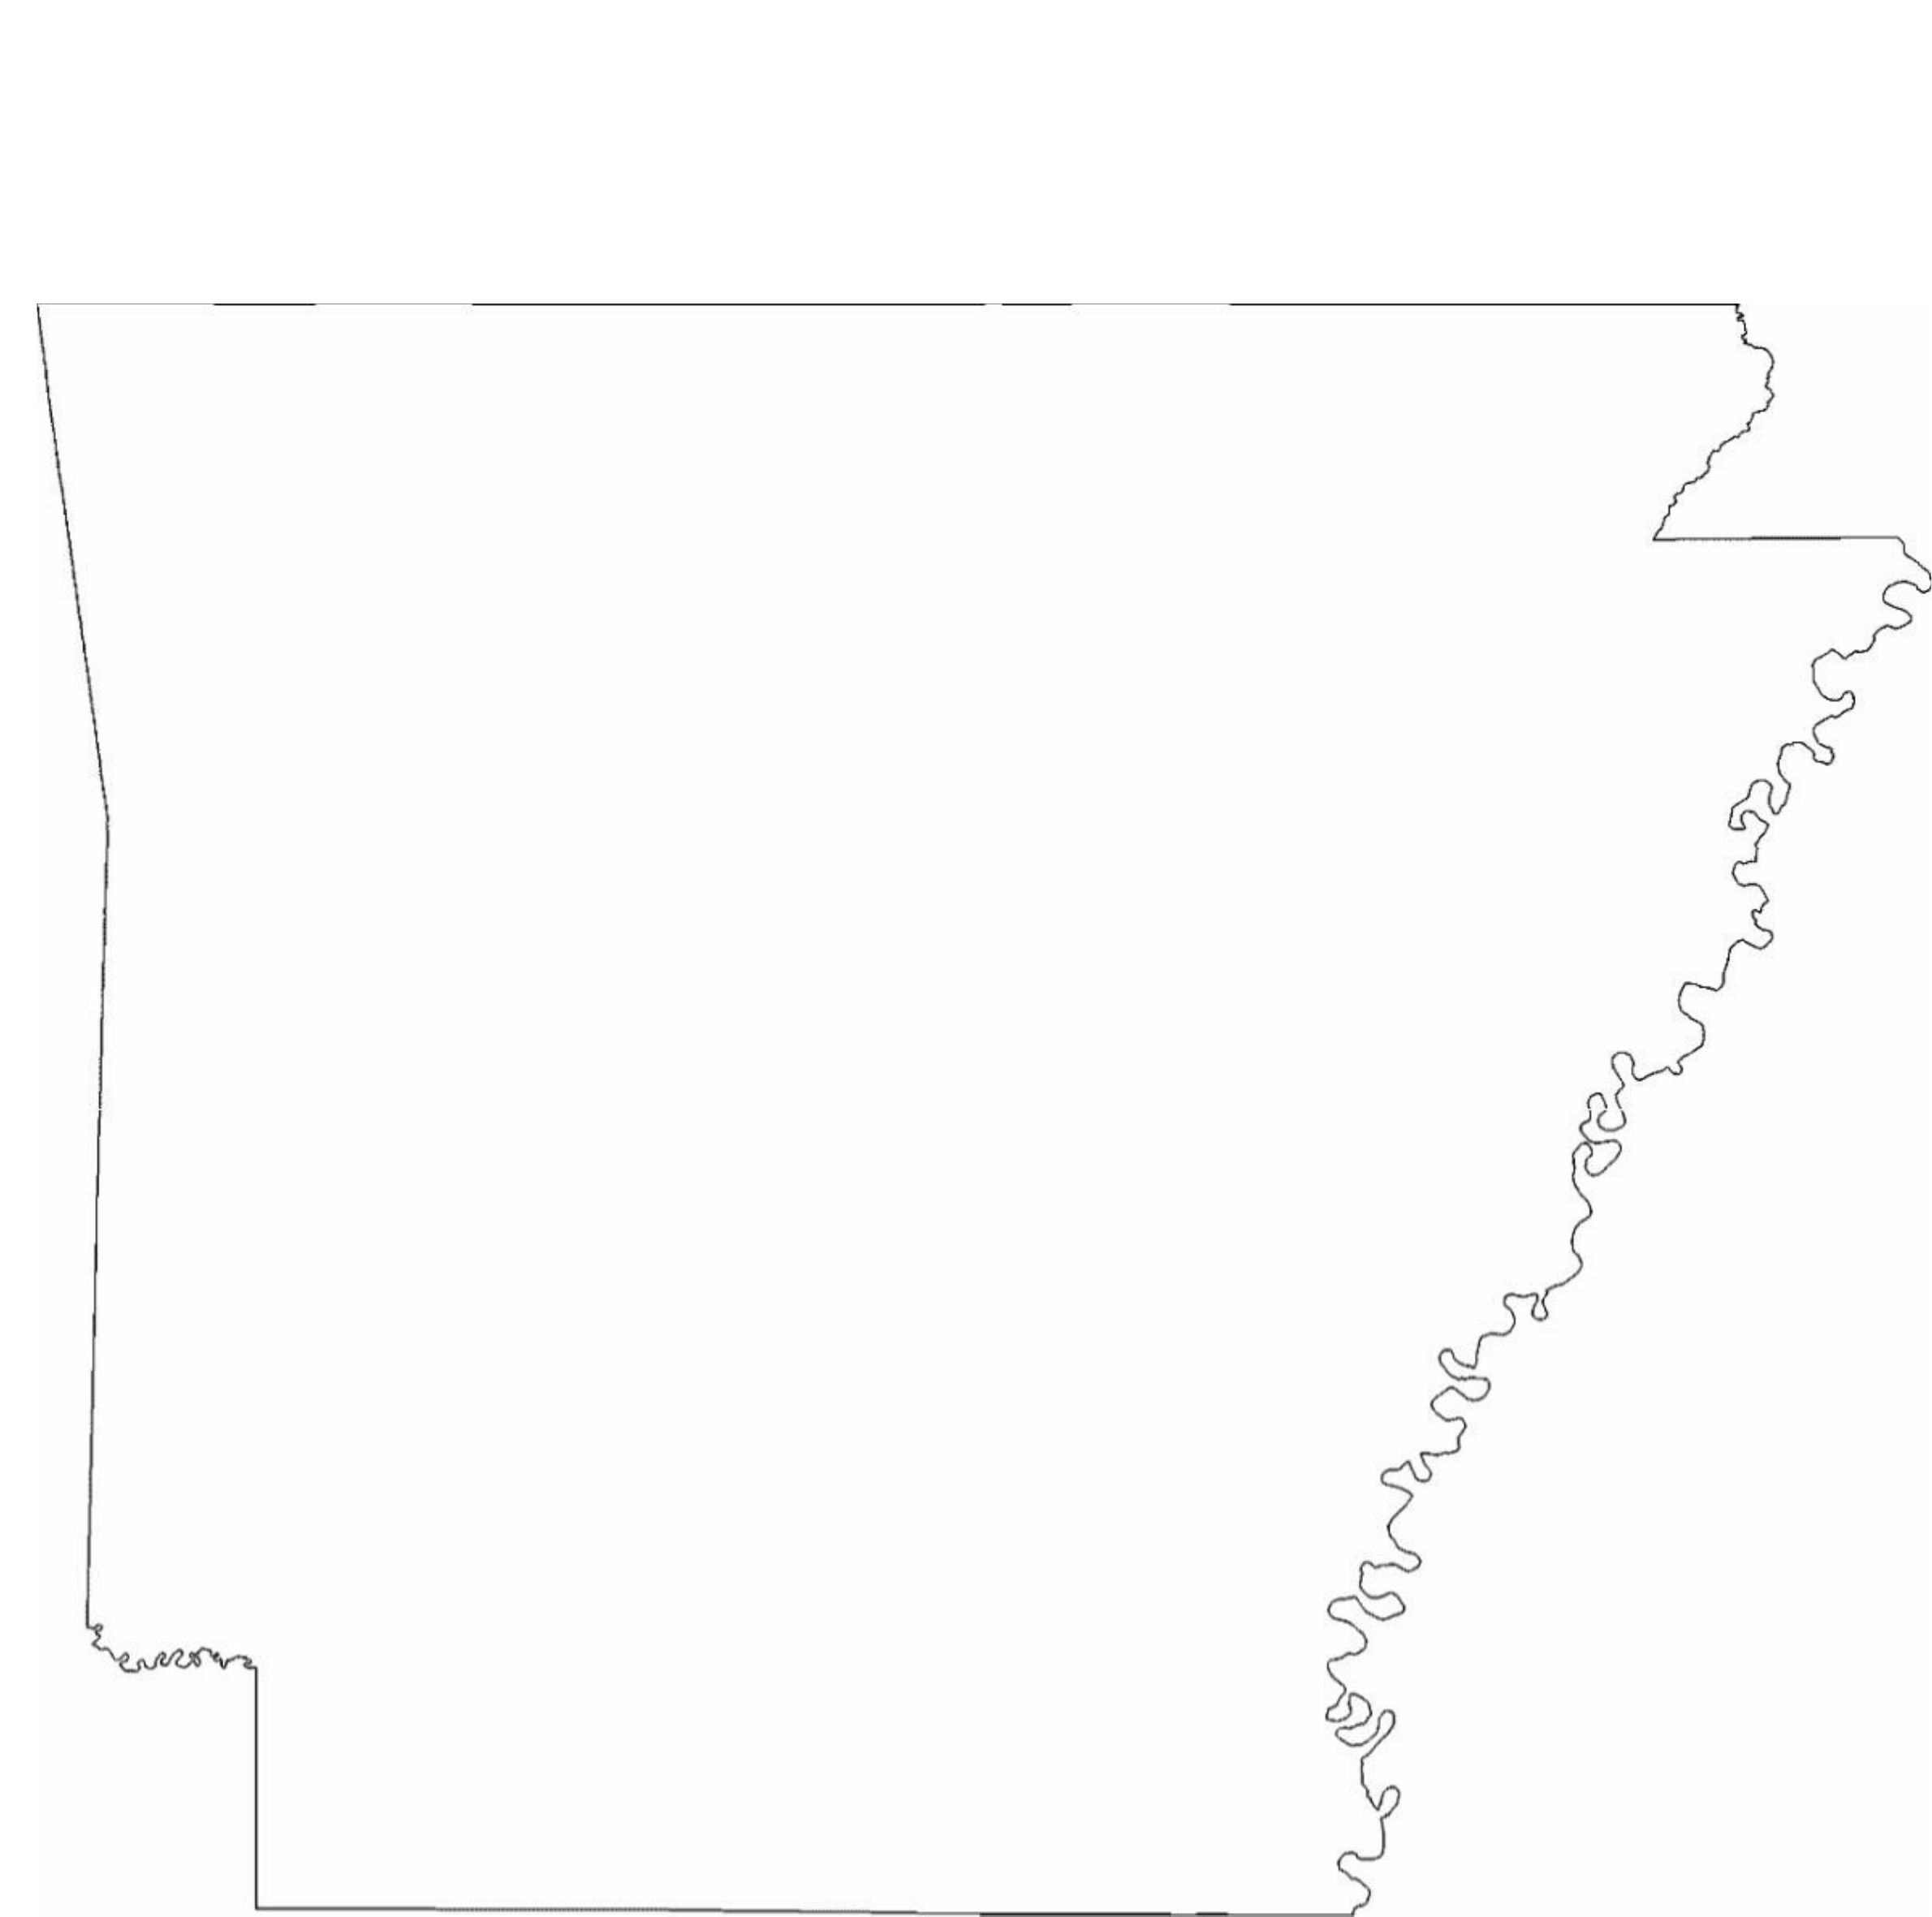 arkansas state outline map free download